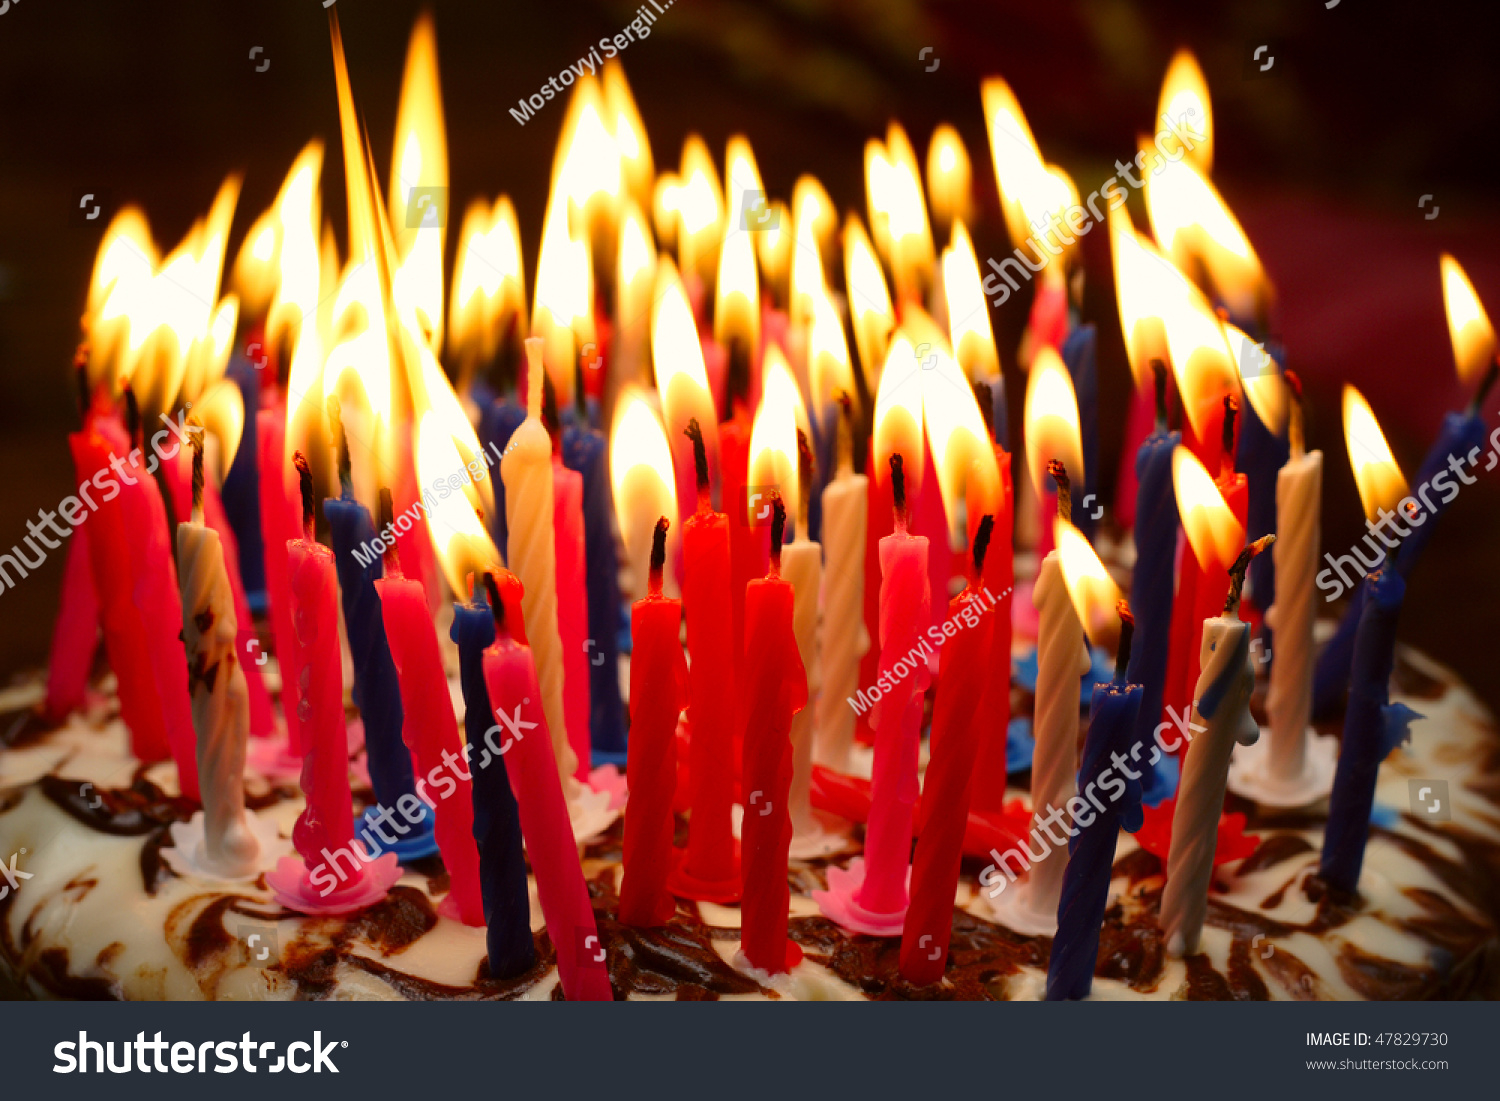 Birthday Cake With Lots Of Candles Birthday Cake Burning Candles Stockfoto Jetzt Bearbeiten 47829730